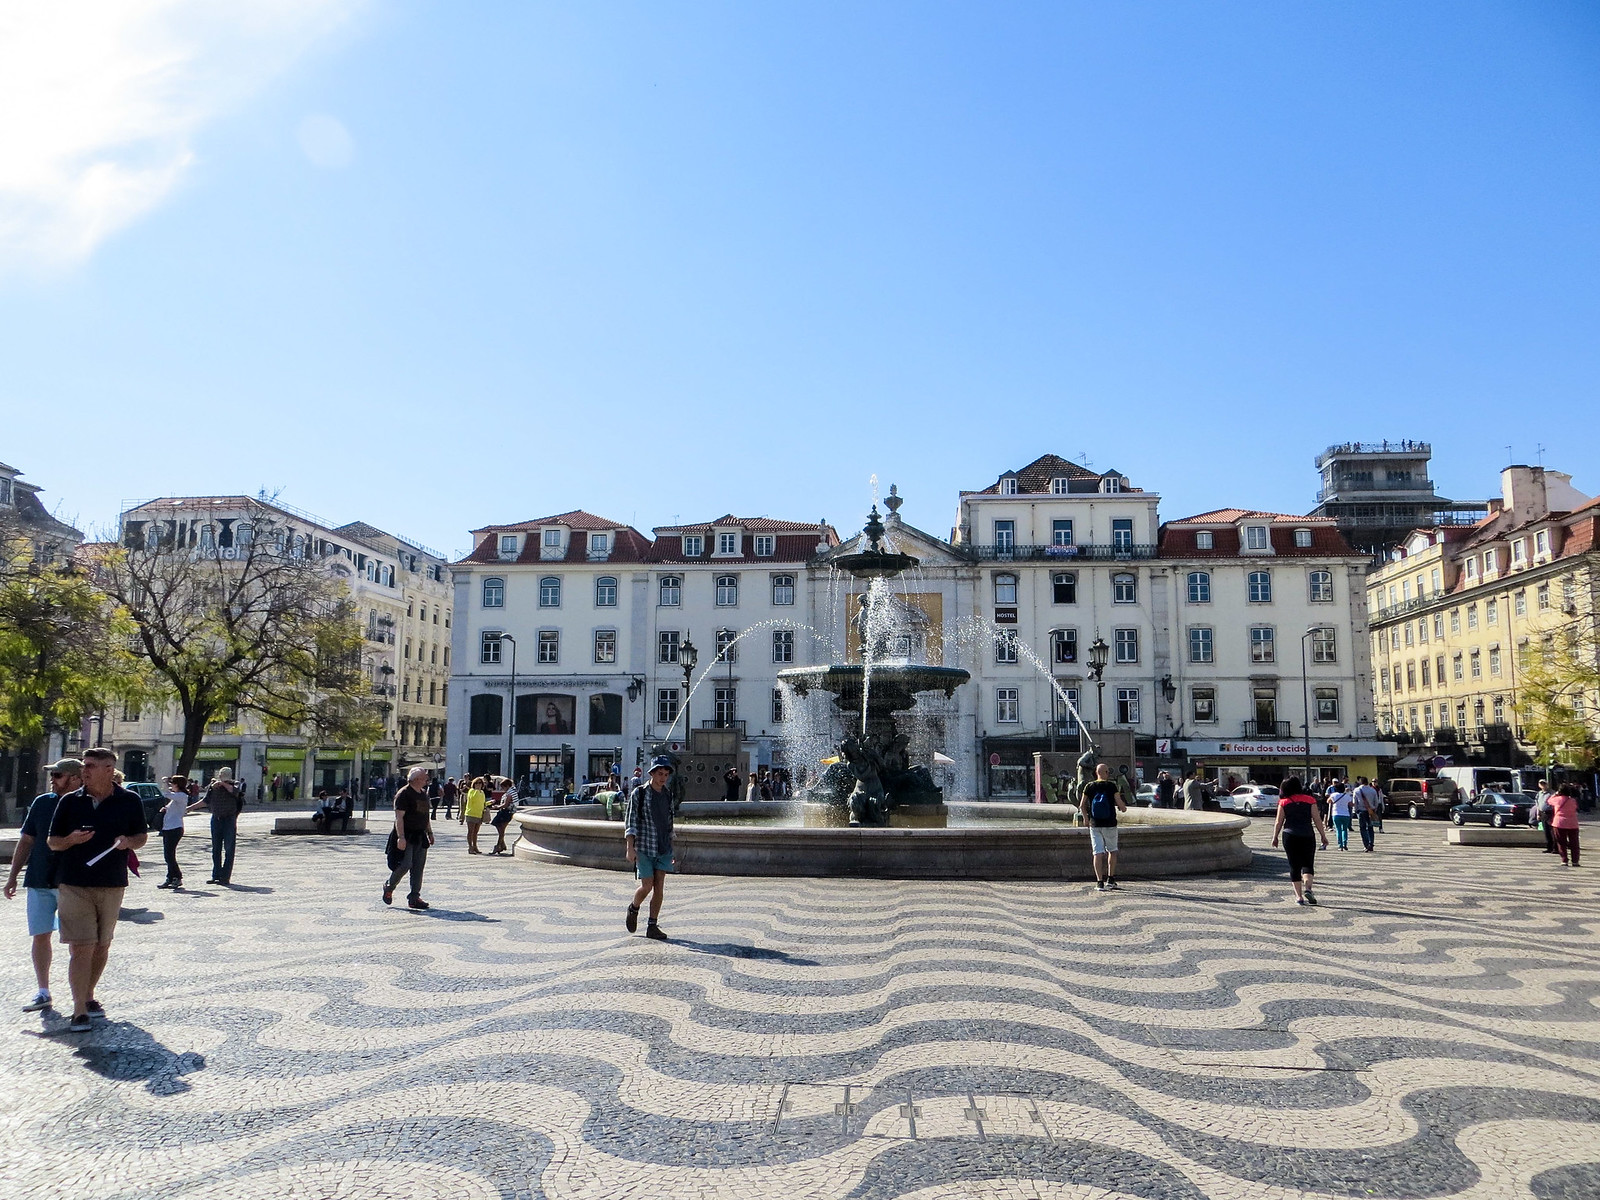 2 days lisbon: arrive at the rossio station and check out the neighborhood